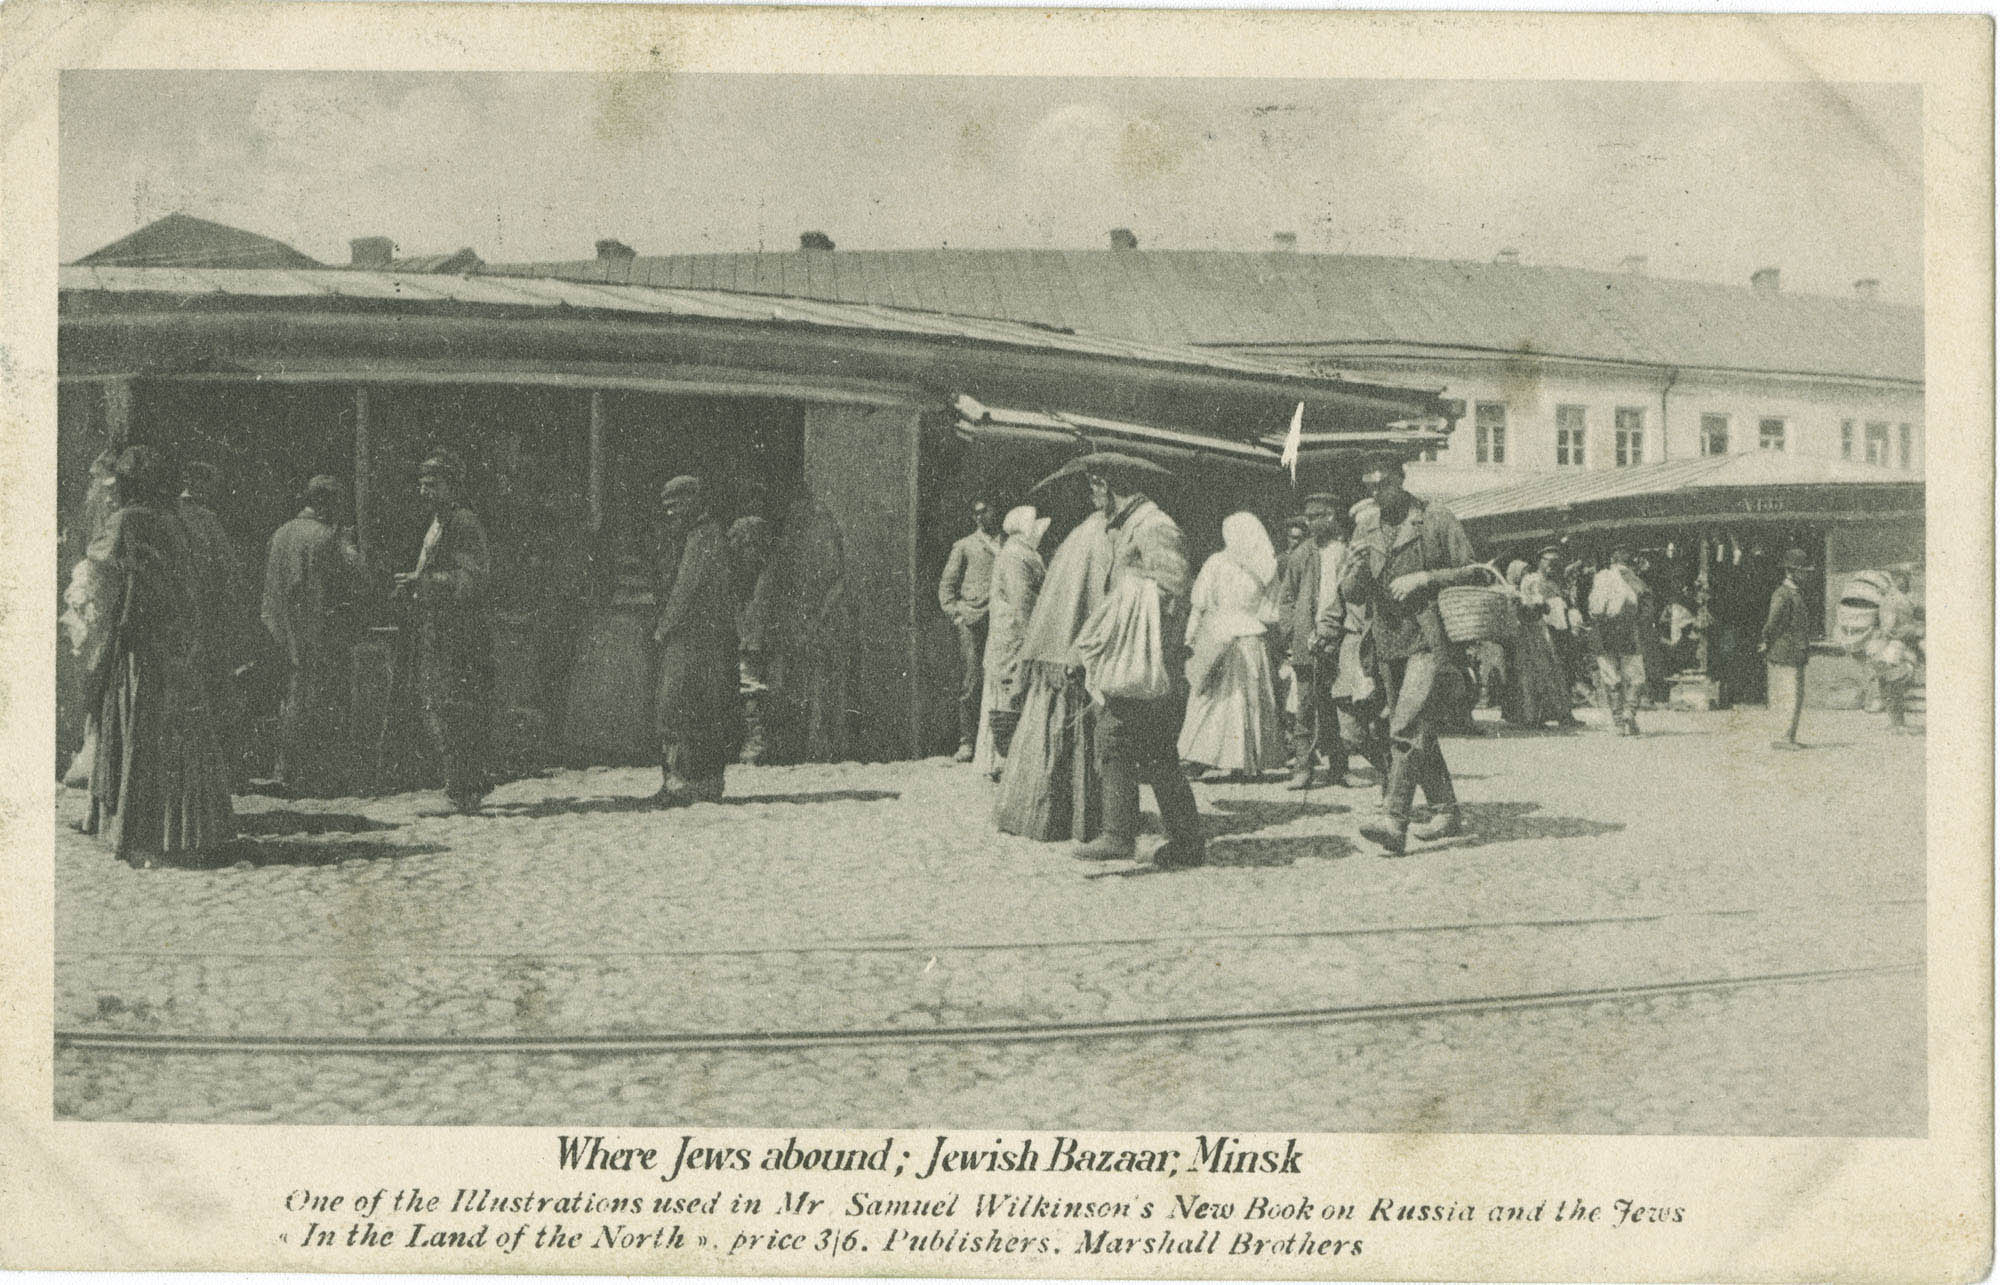 Where Jews abound : Jewish Bazaar, Minsk